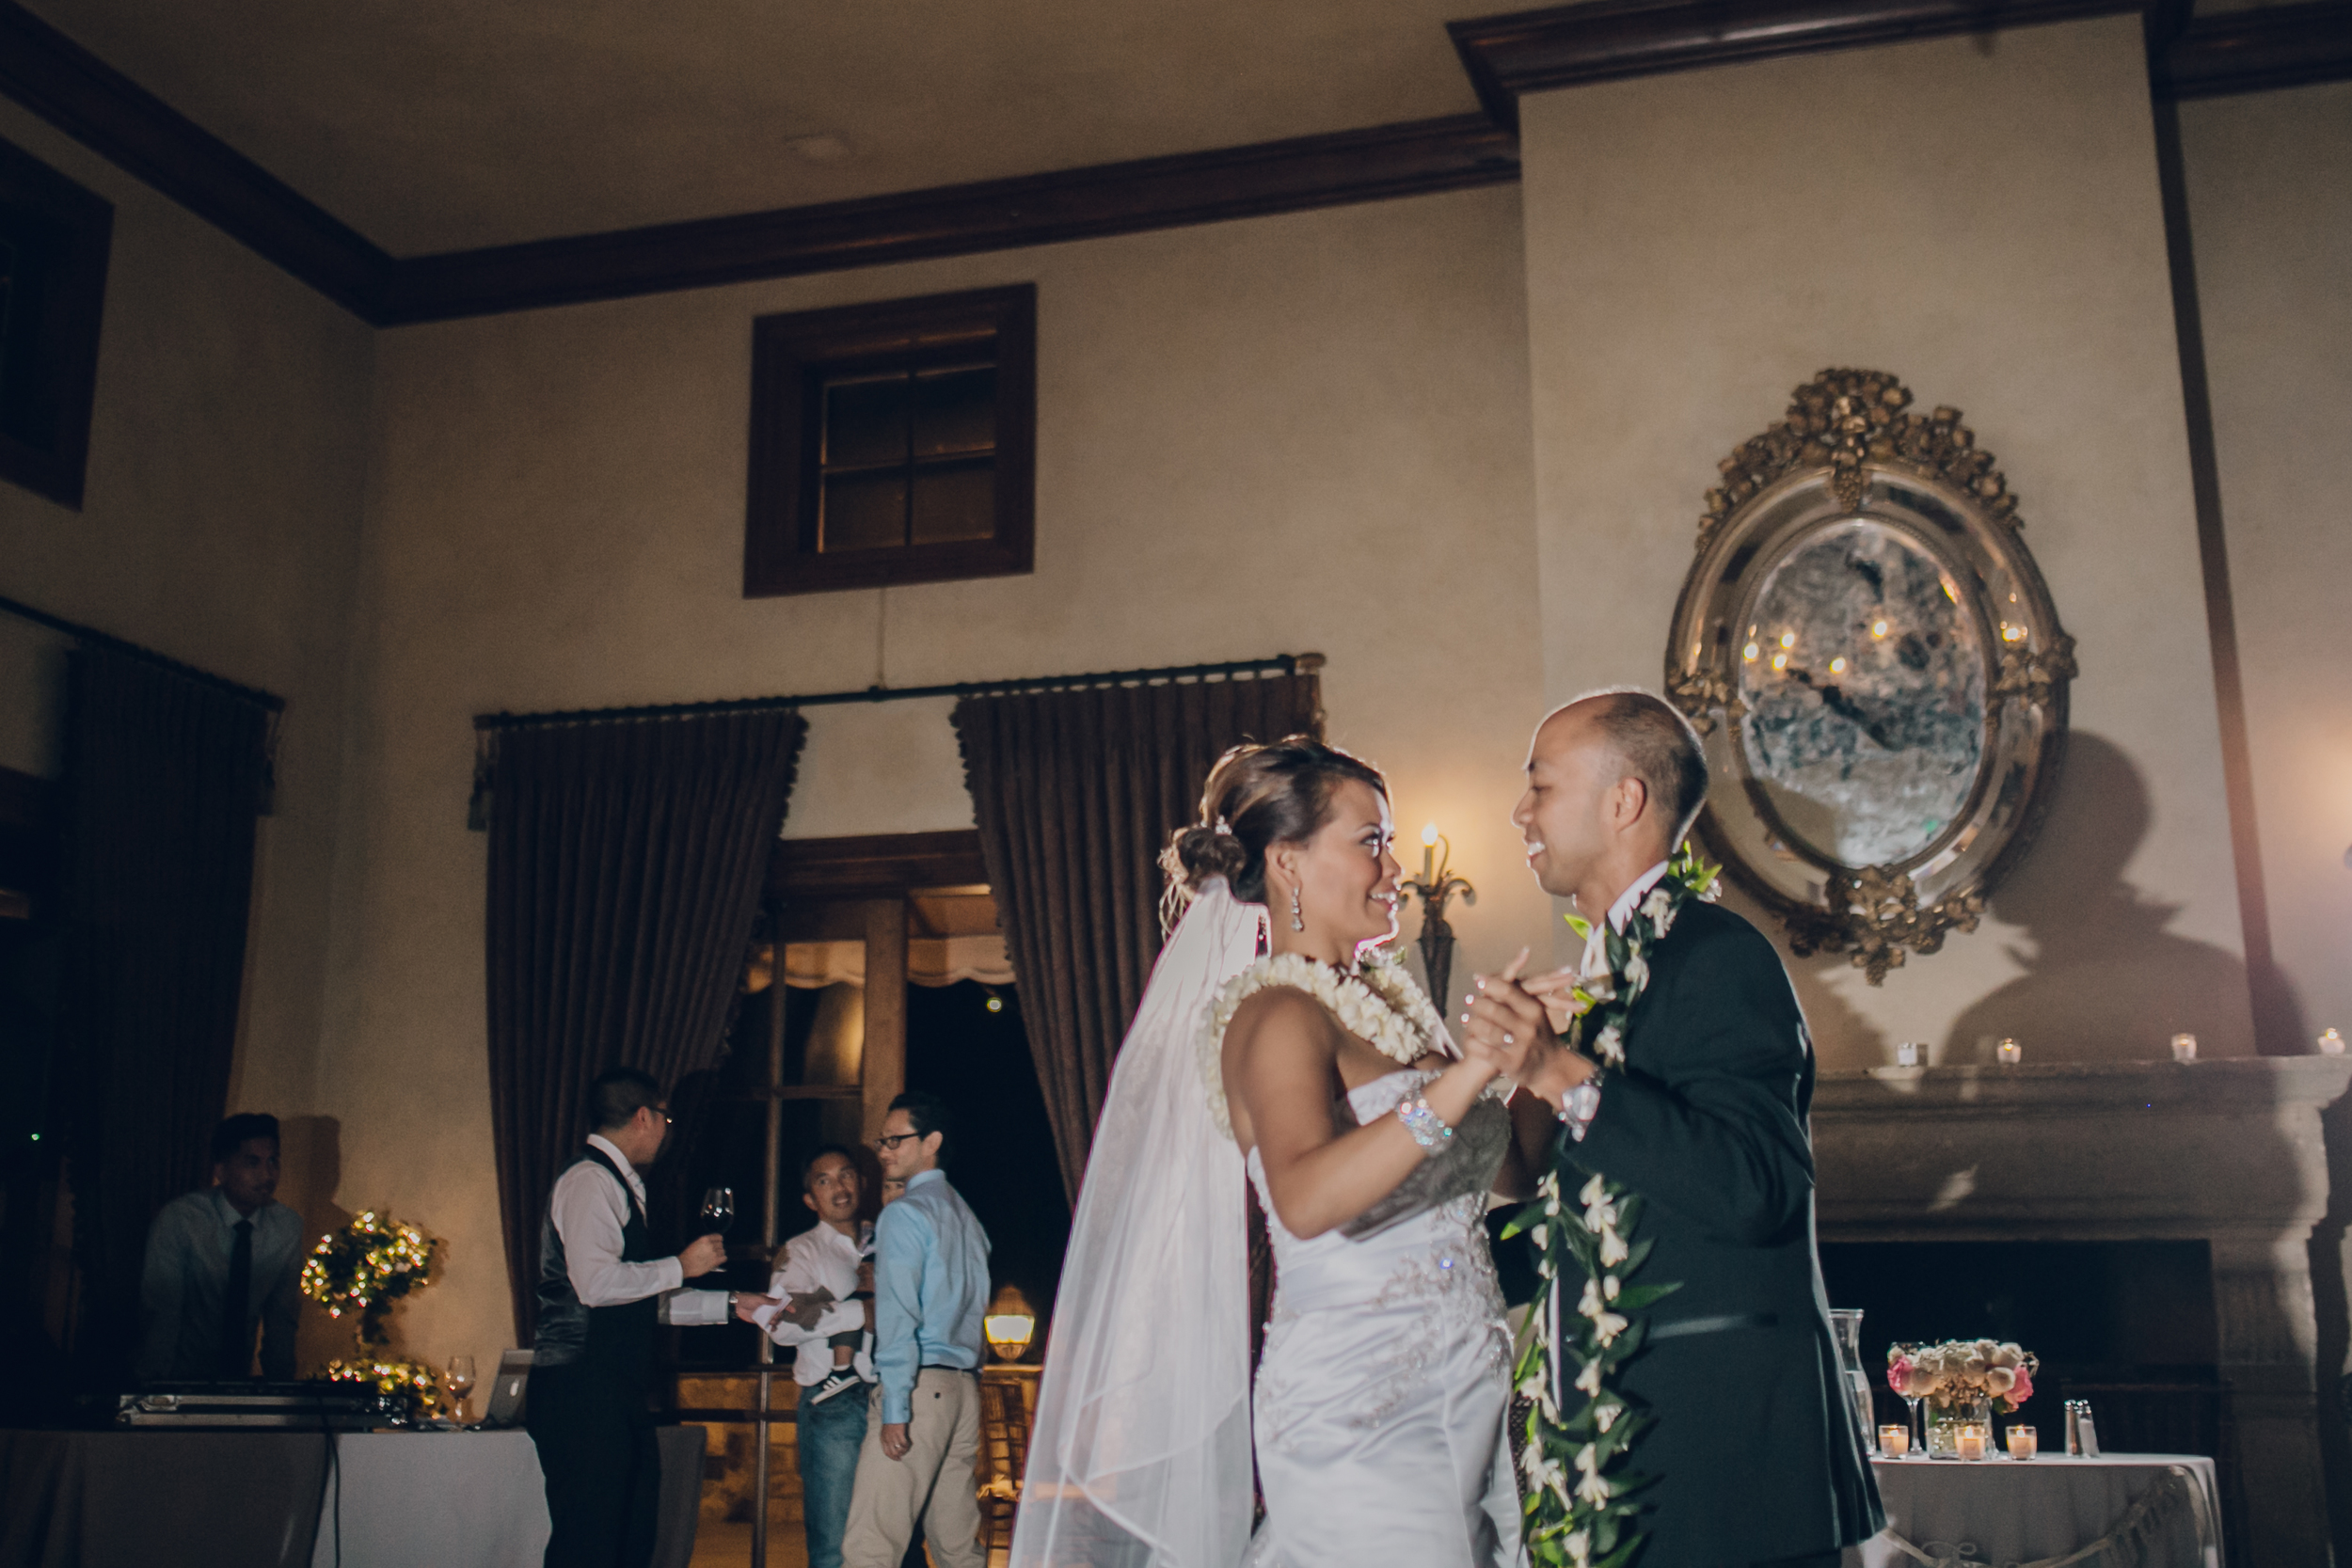 Shiela + Lester's Wedding 9-30-15 1113-Edit.jpg